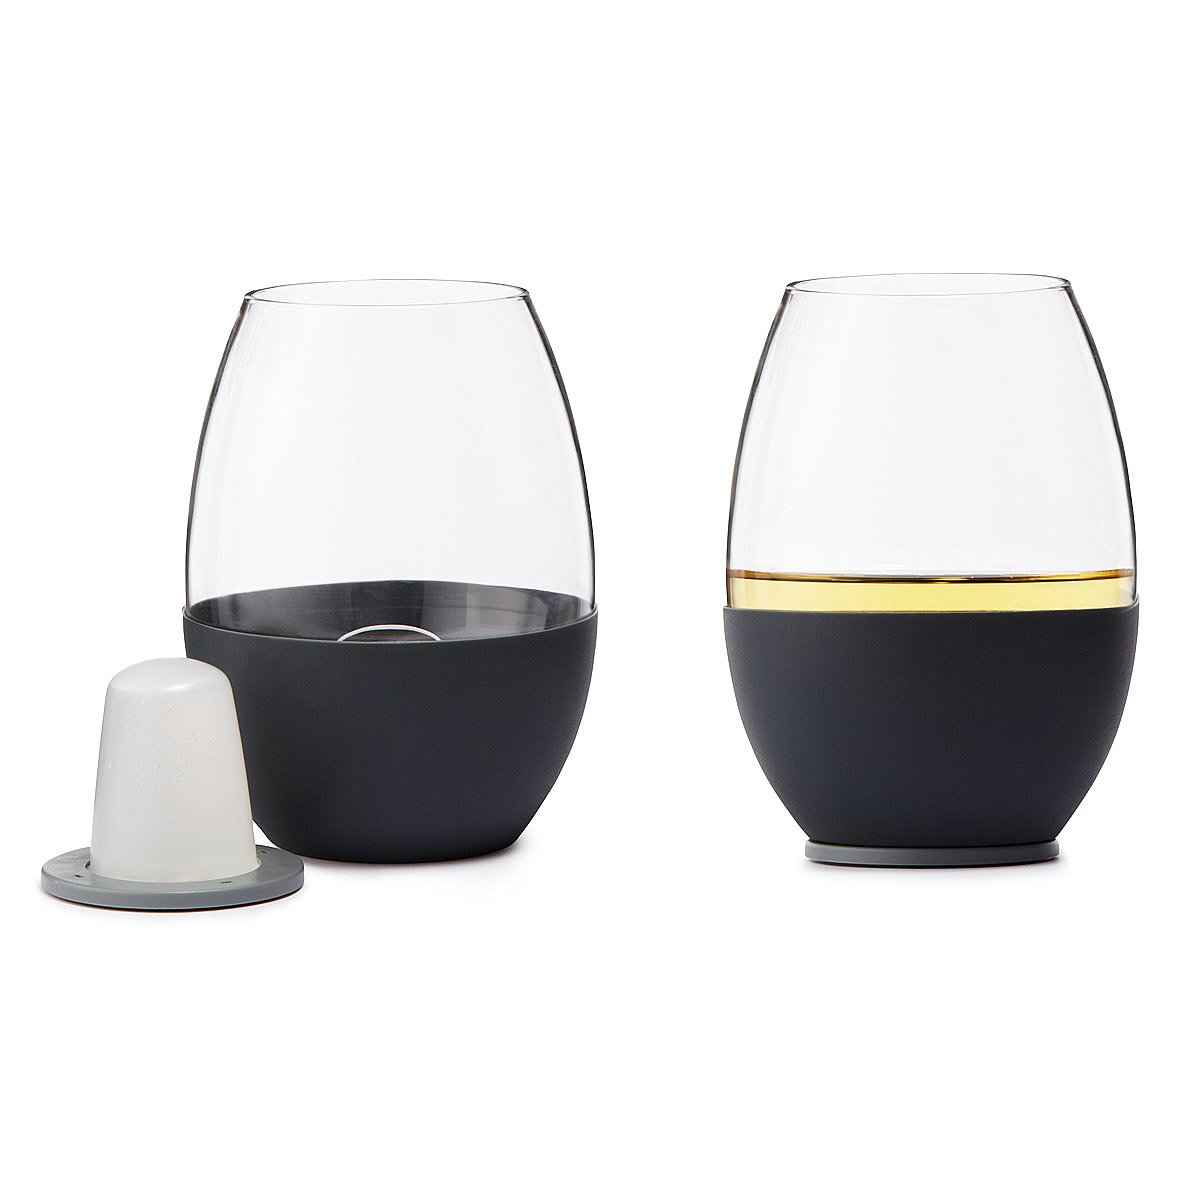 self chilling wine glasses set of 2 1 thumbnail